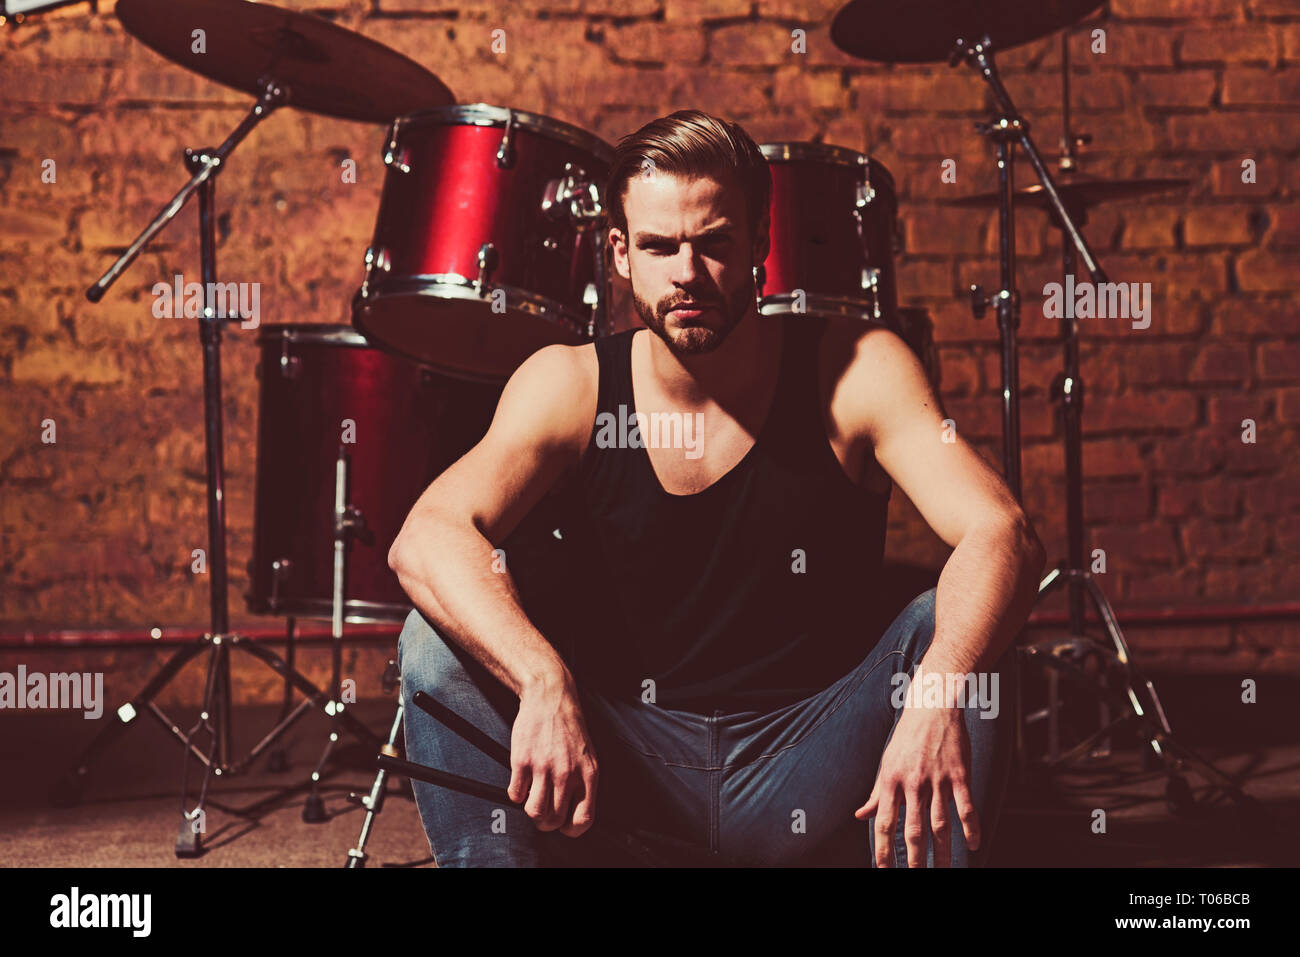 Theres music in the air. Enjoying instrumental music. Handsome man sit on stage at percussion instrument. Man drummer with musical instrument. Rock - Stock Image